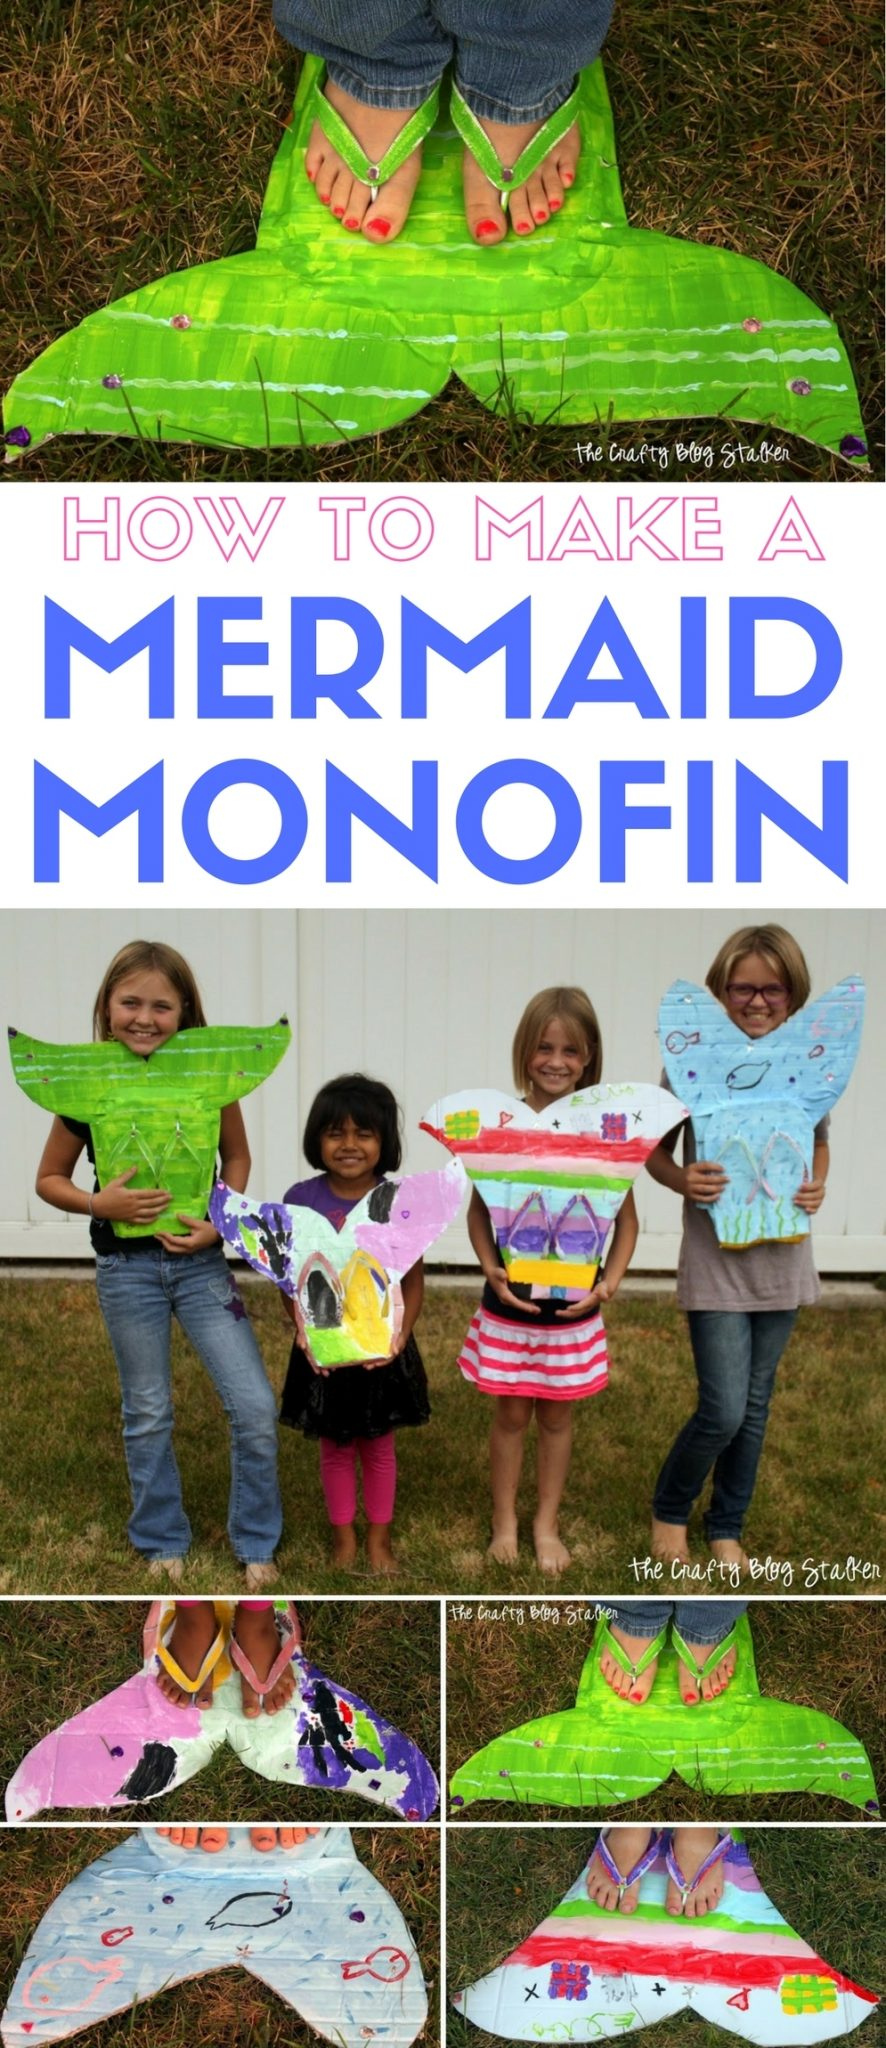 Mermaid Monofin | Kids Craft | DIY Tutorial | Pretend Play | Dress Up | The Little Mermaid